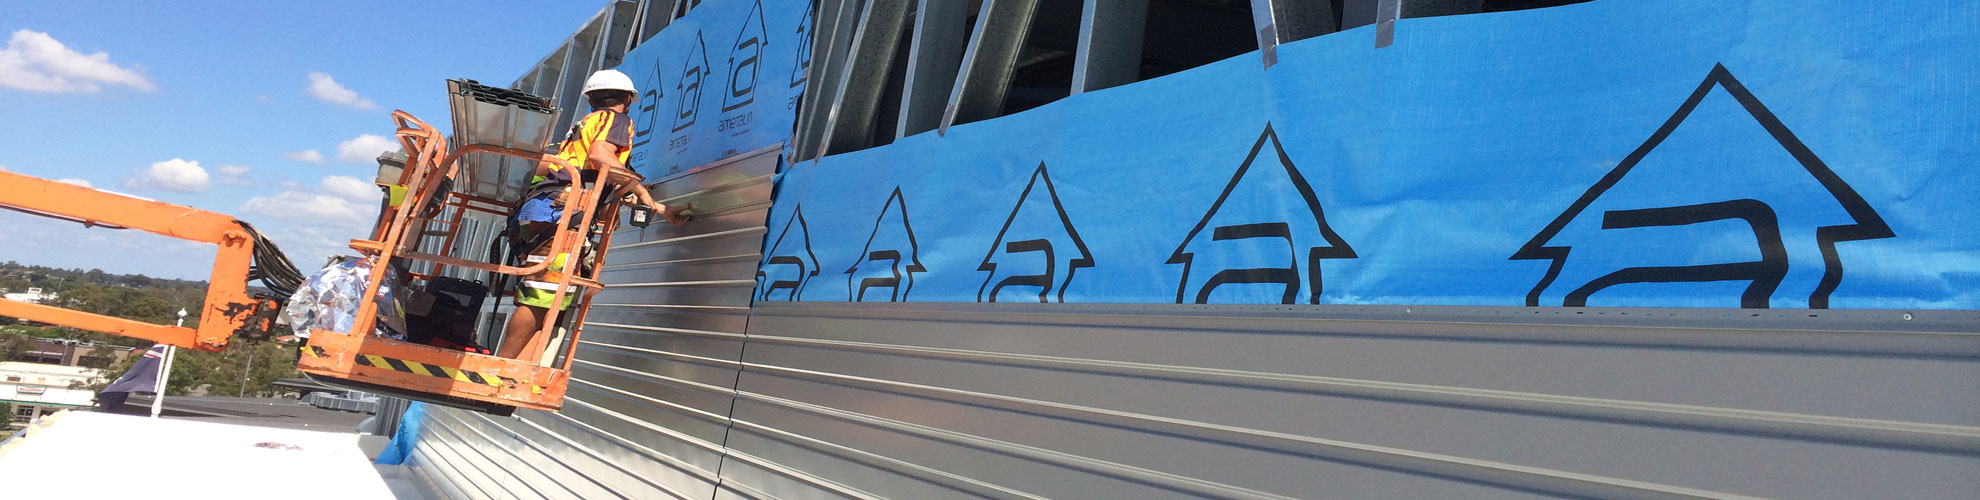 Working in close connection with the building and design team, Quikdeck roofing contractor delivered a superior project ahead of schedule, finished with stainless steel gutters and half round downpipes and customized precision cappings and flashings to compliment the distinctive and dynamic design features of the facility.